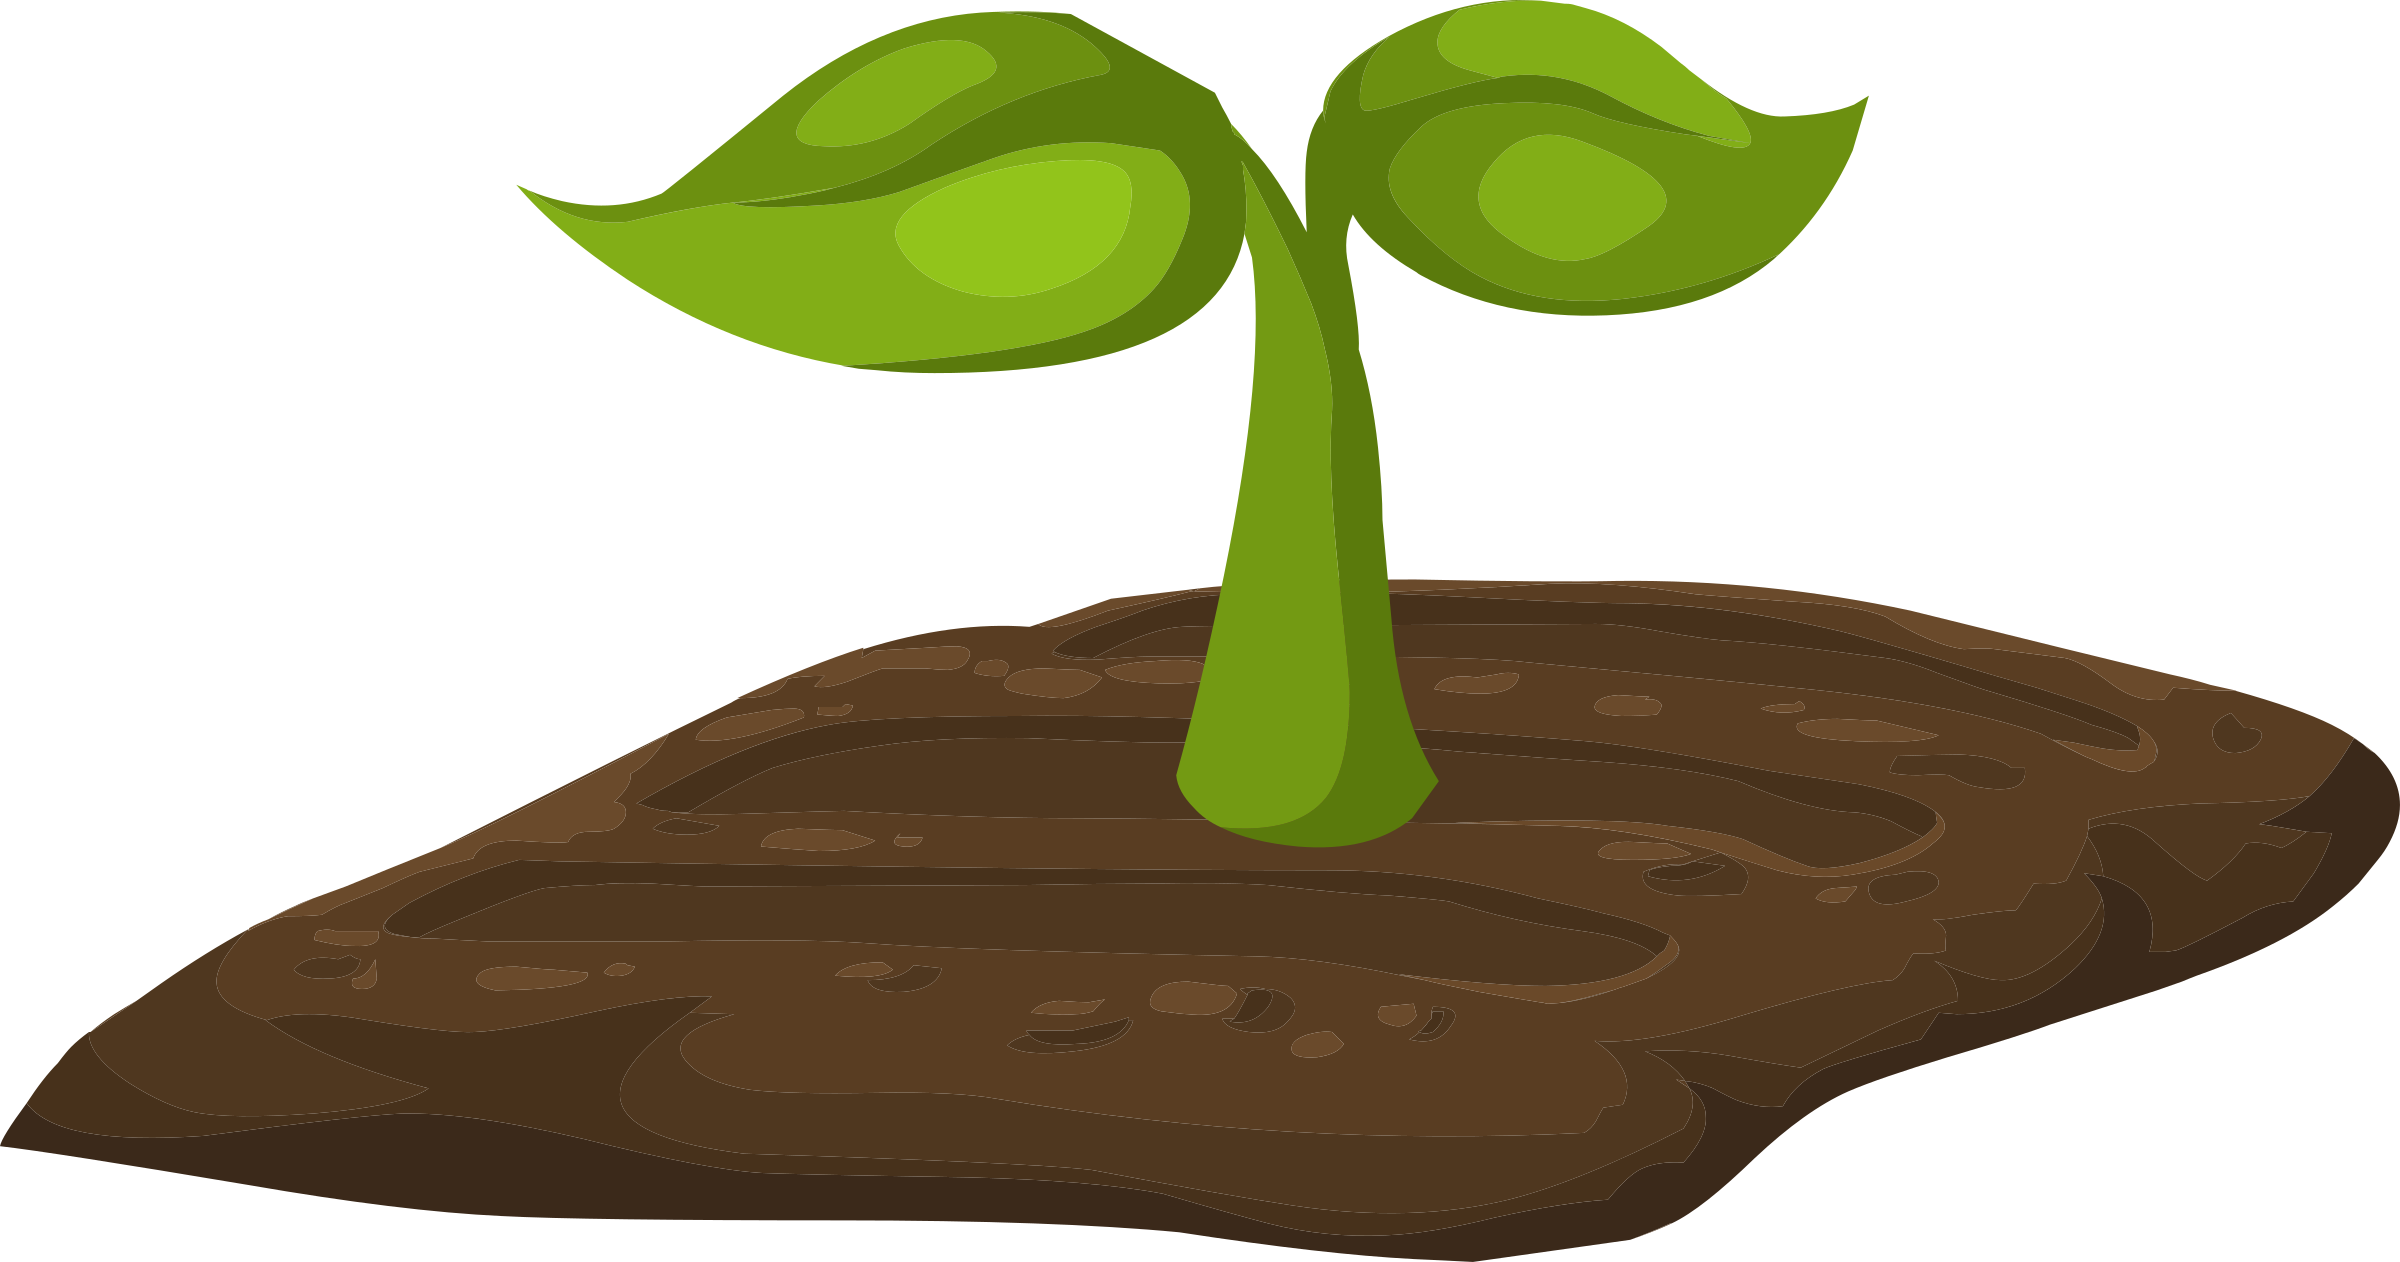 Clipart - Harvestable Resources Garden New